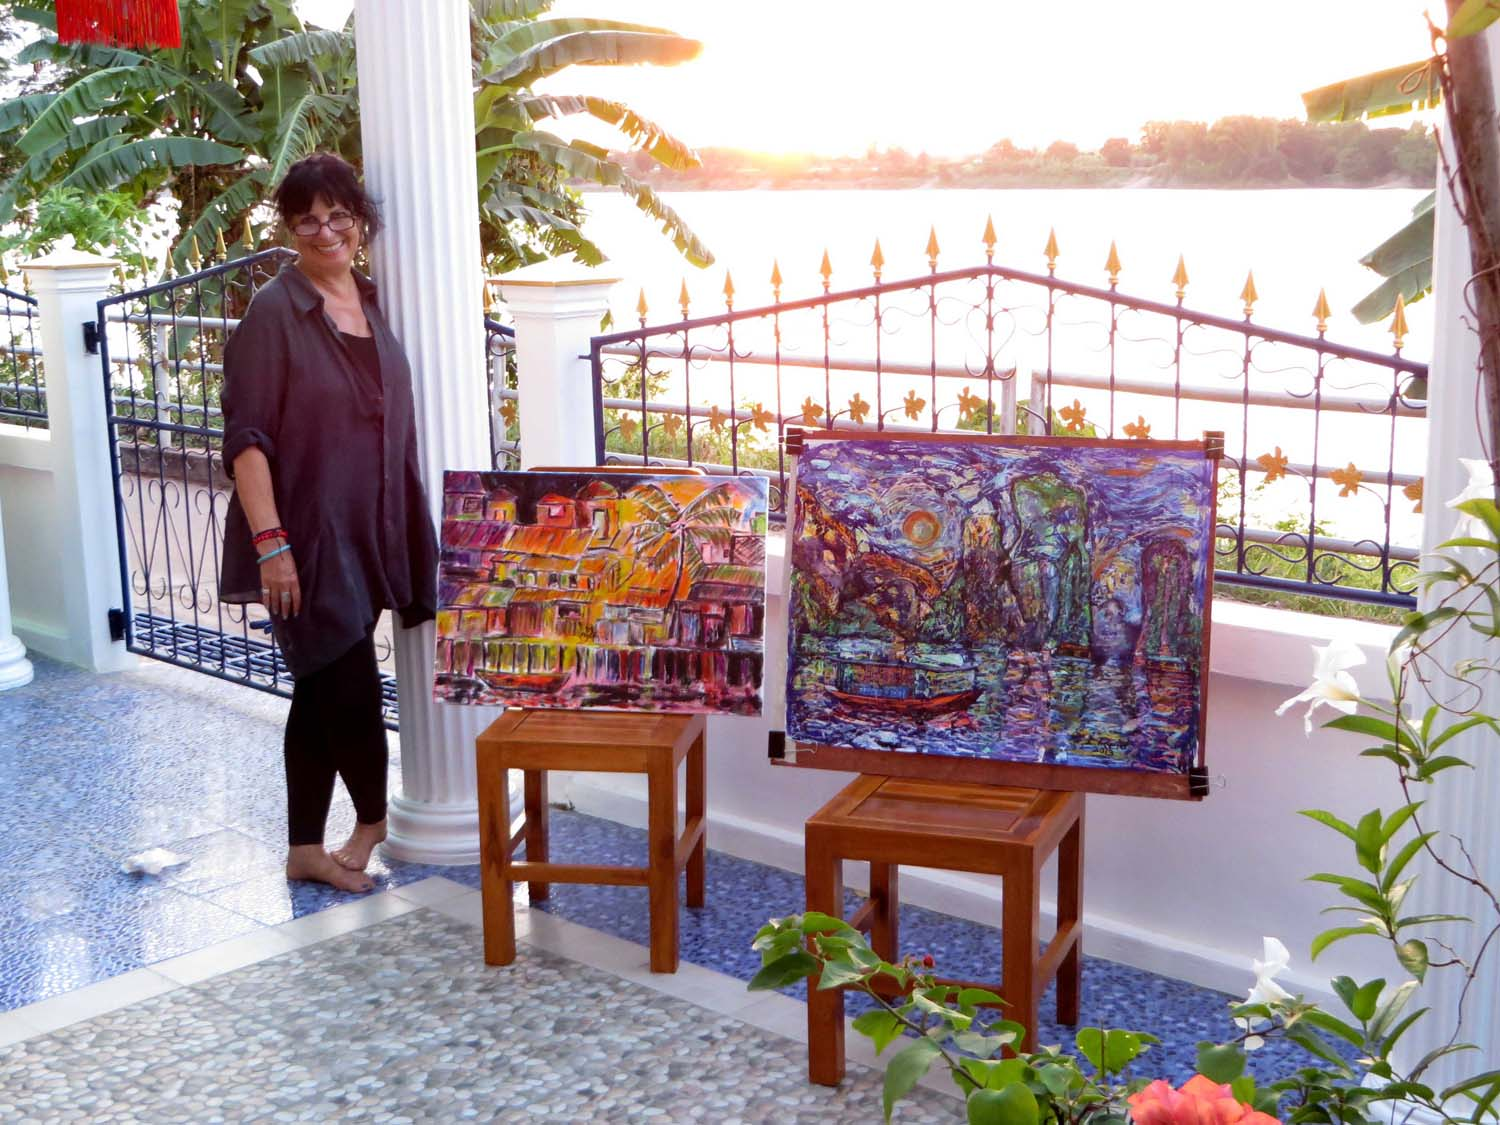 Artist Lydia enjoying a painting holiday in Thailand  008.jpg